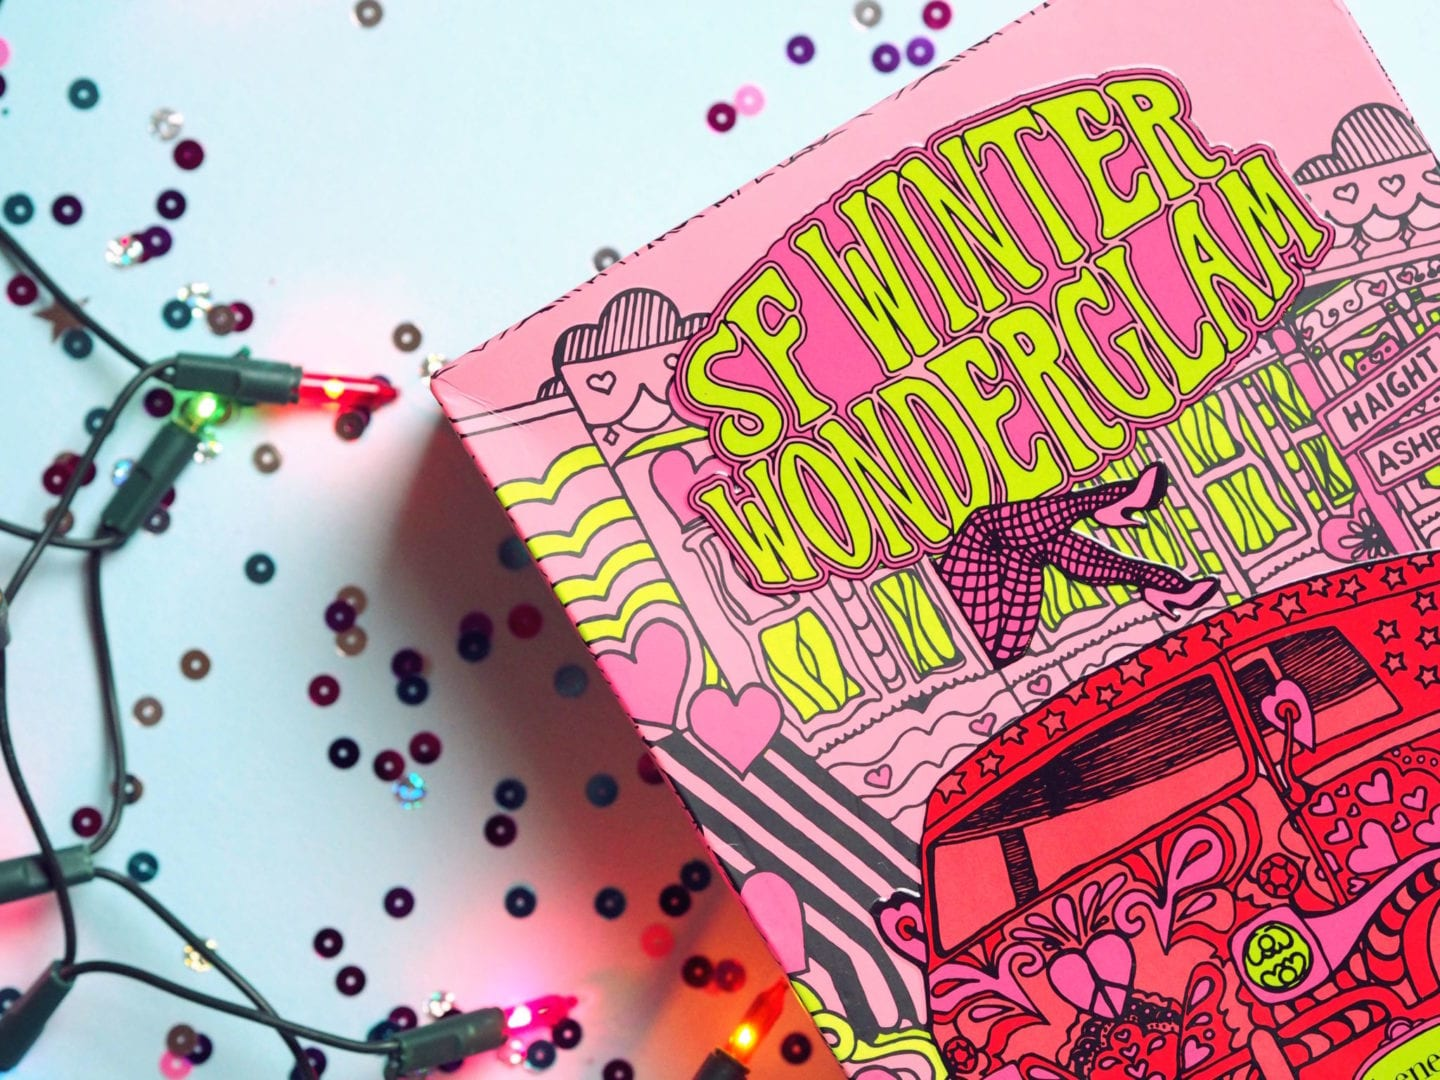 Benefit 'SF Winter WonderGlam' Calendar